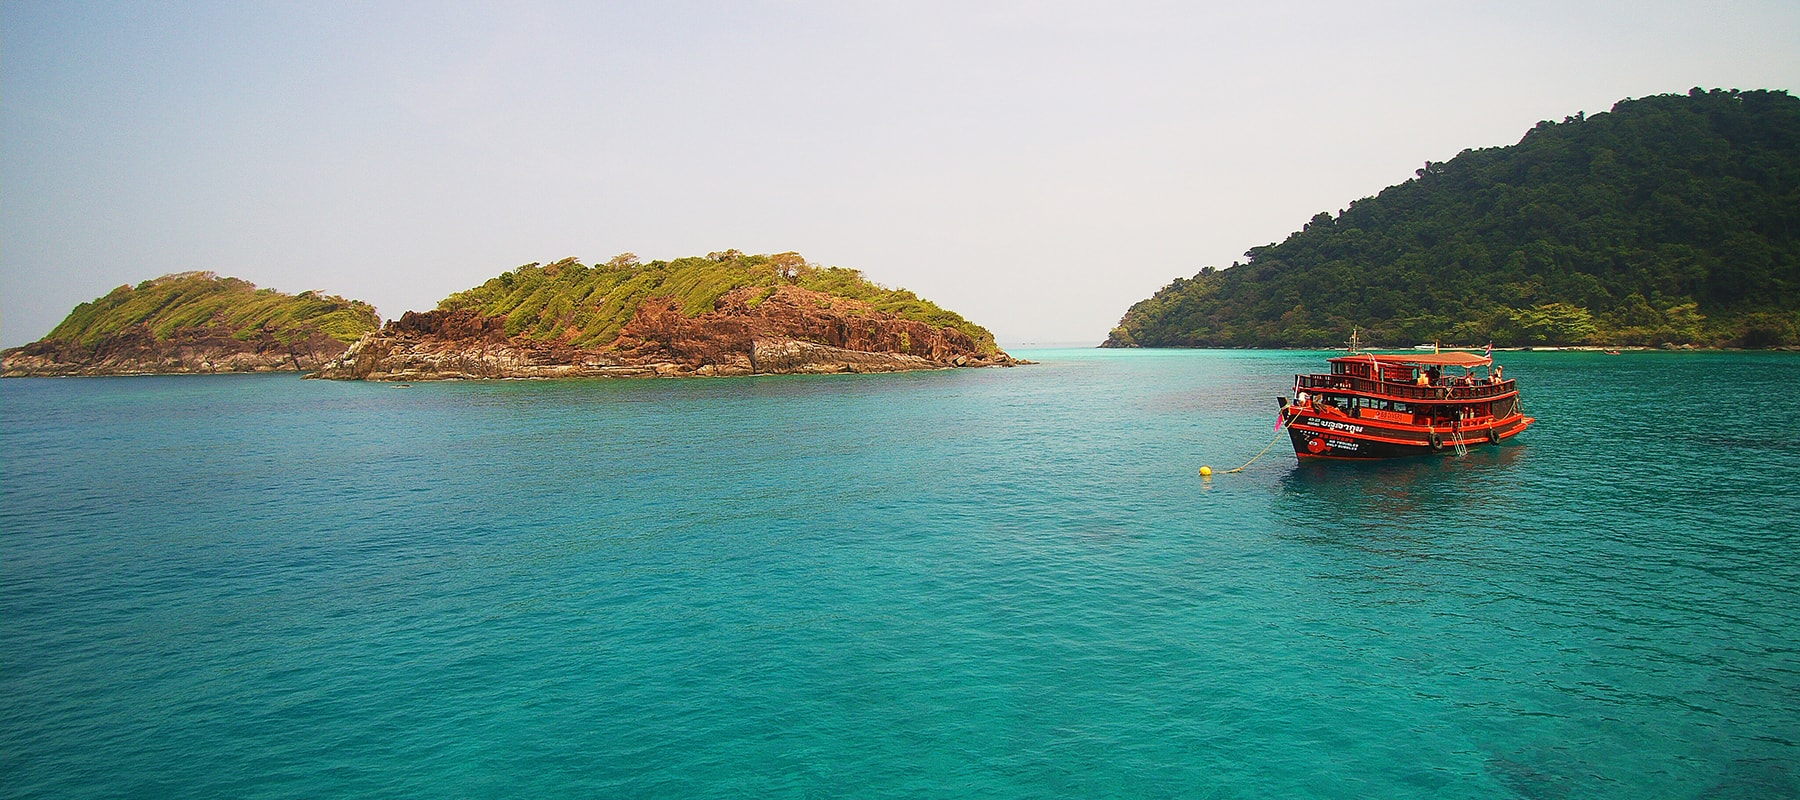 bb-divers-at-koh-rang.jpg